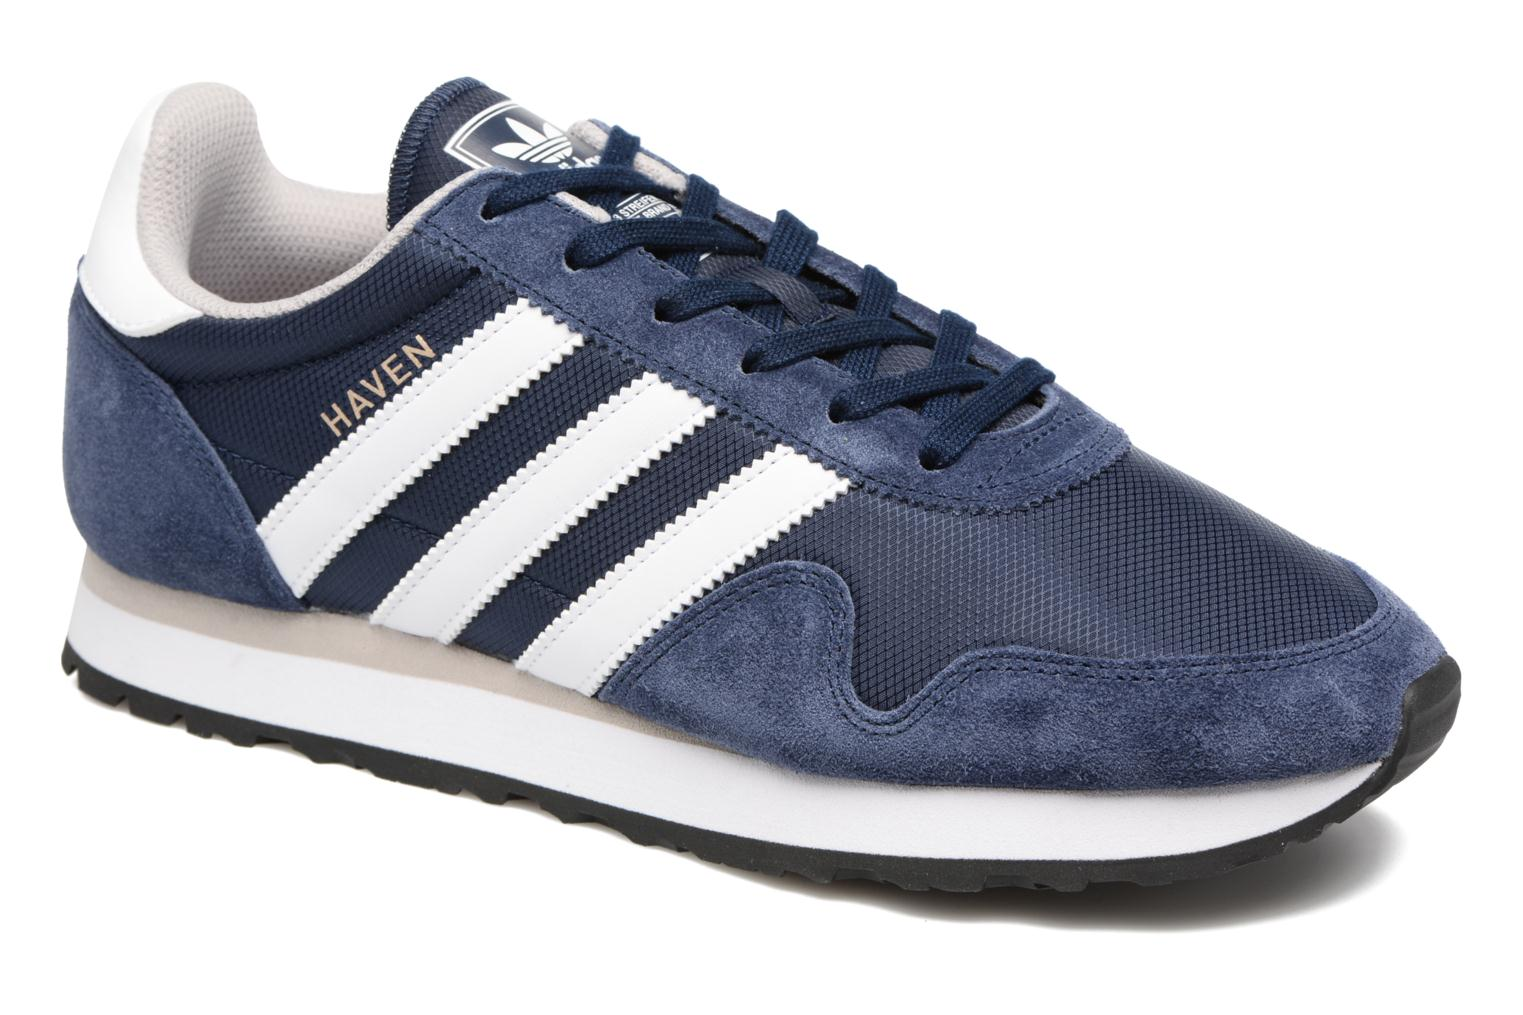 Marques Chaussure homme Adidas Originals homme Haven Blnaco/Ftwbla/Gracla